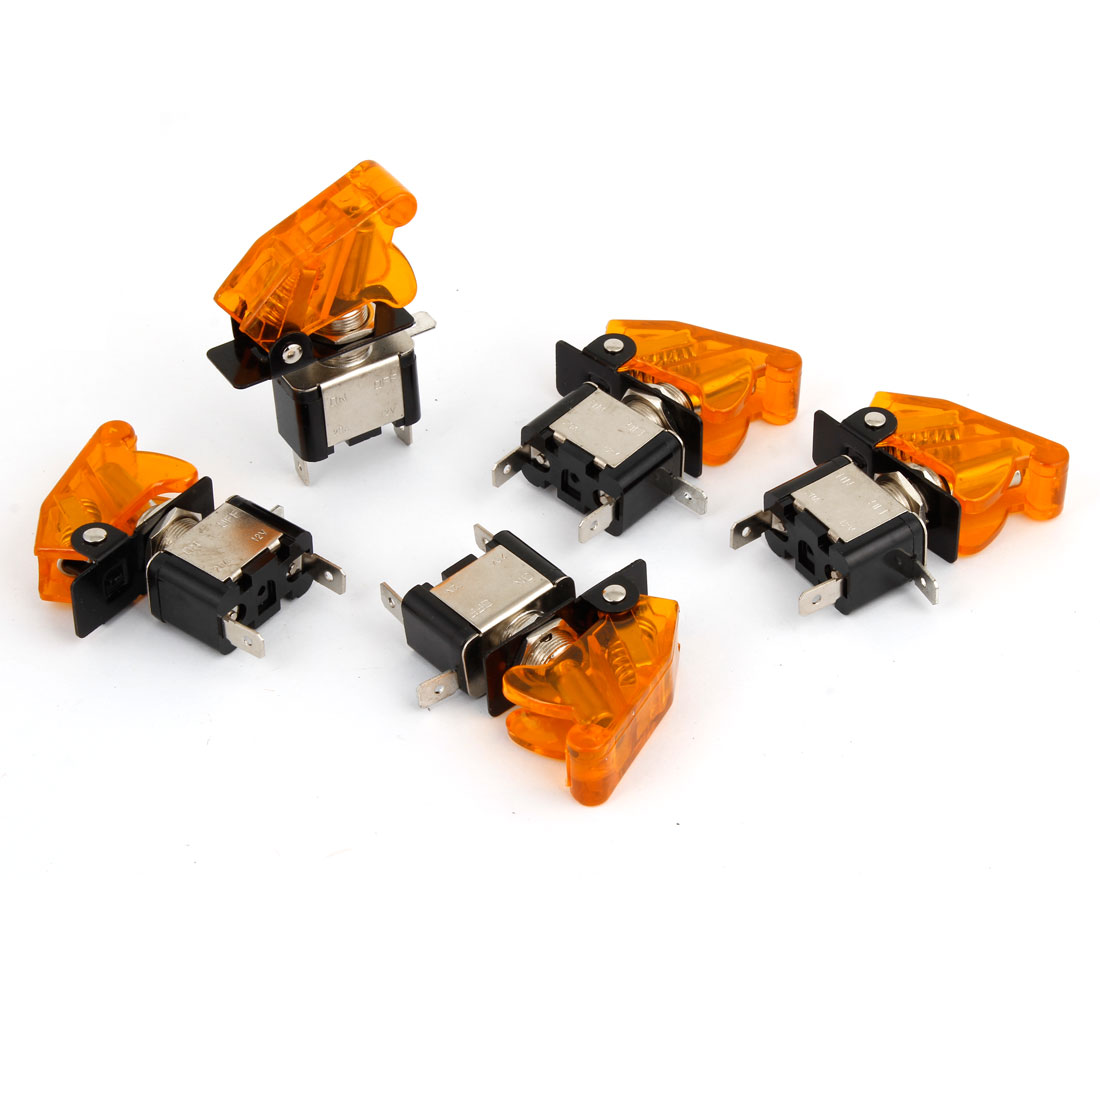 DC 12V 20A Yellow LED Illumination SPST ON/OFF Racing Car Toggle Switch 5 Pcs